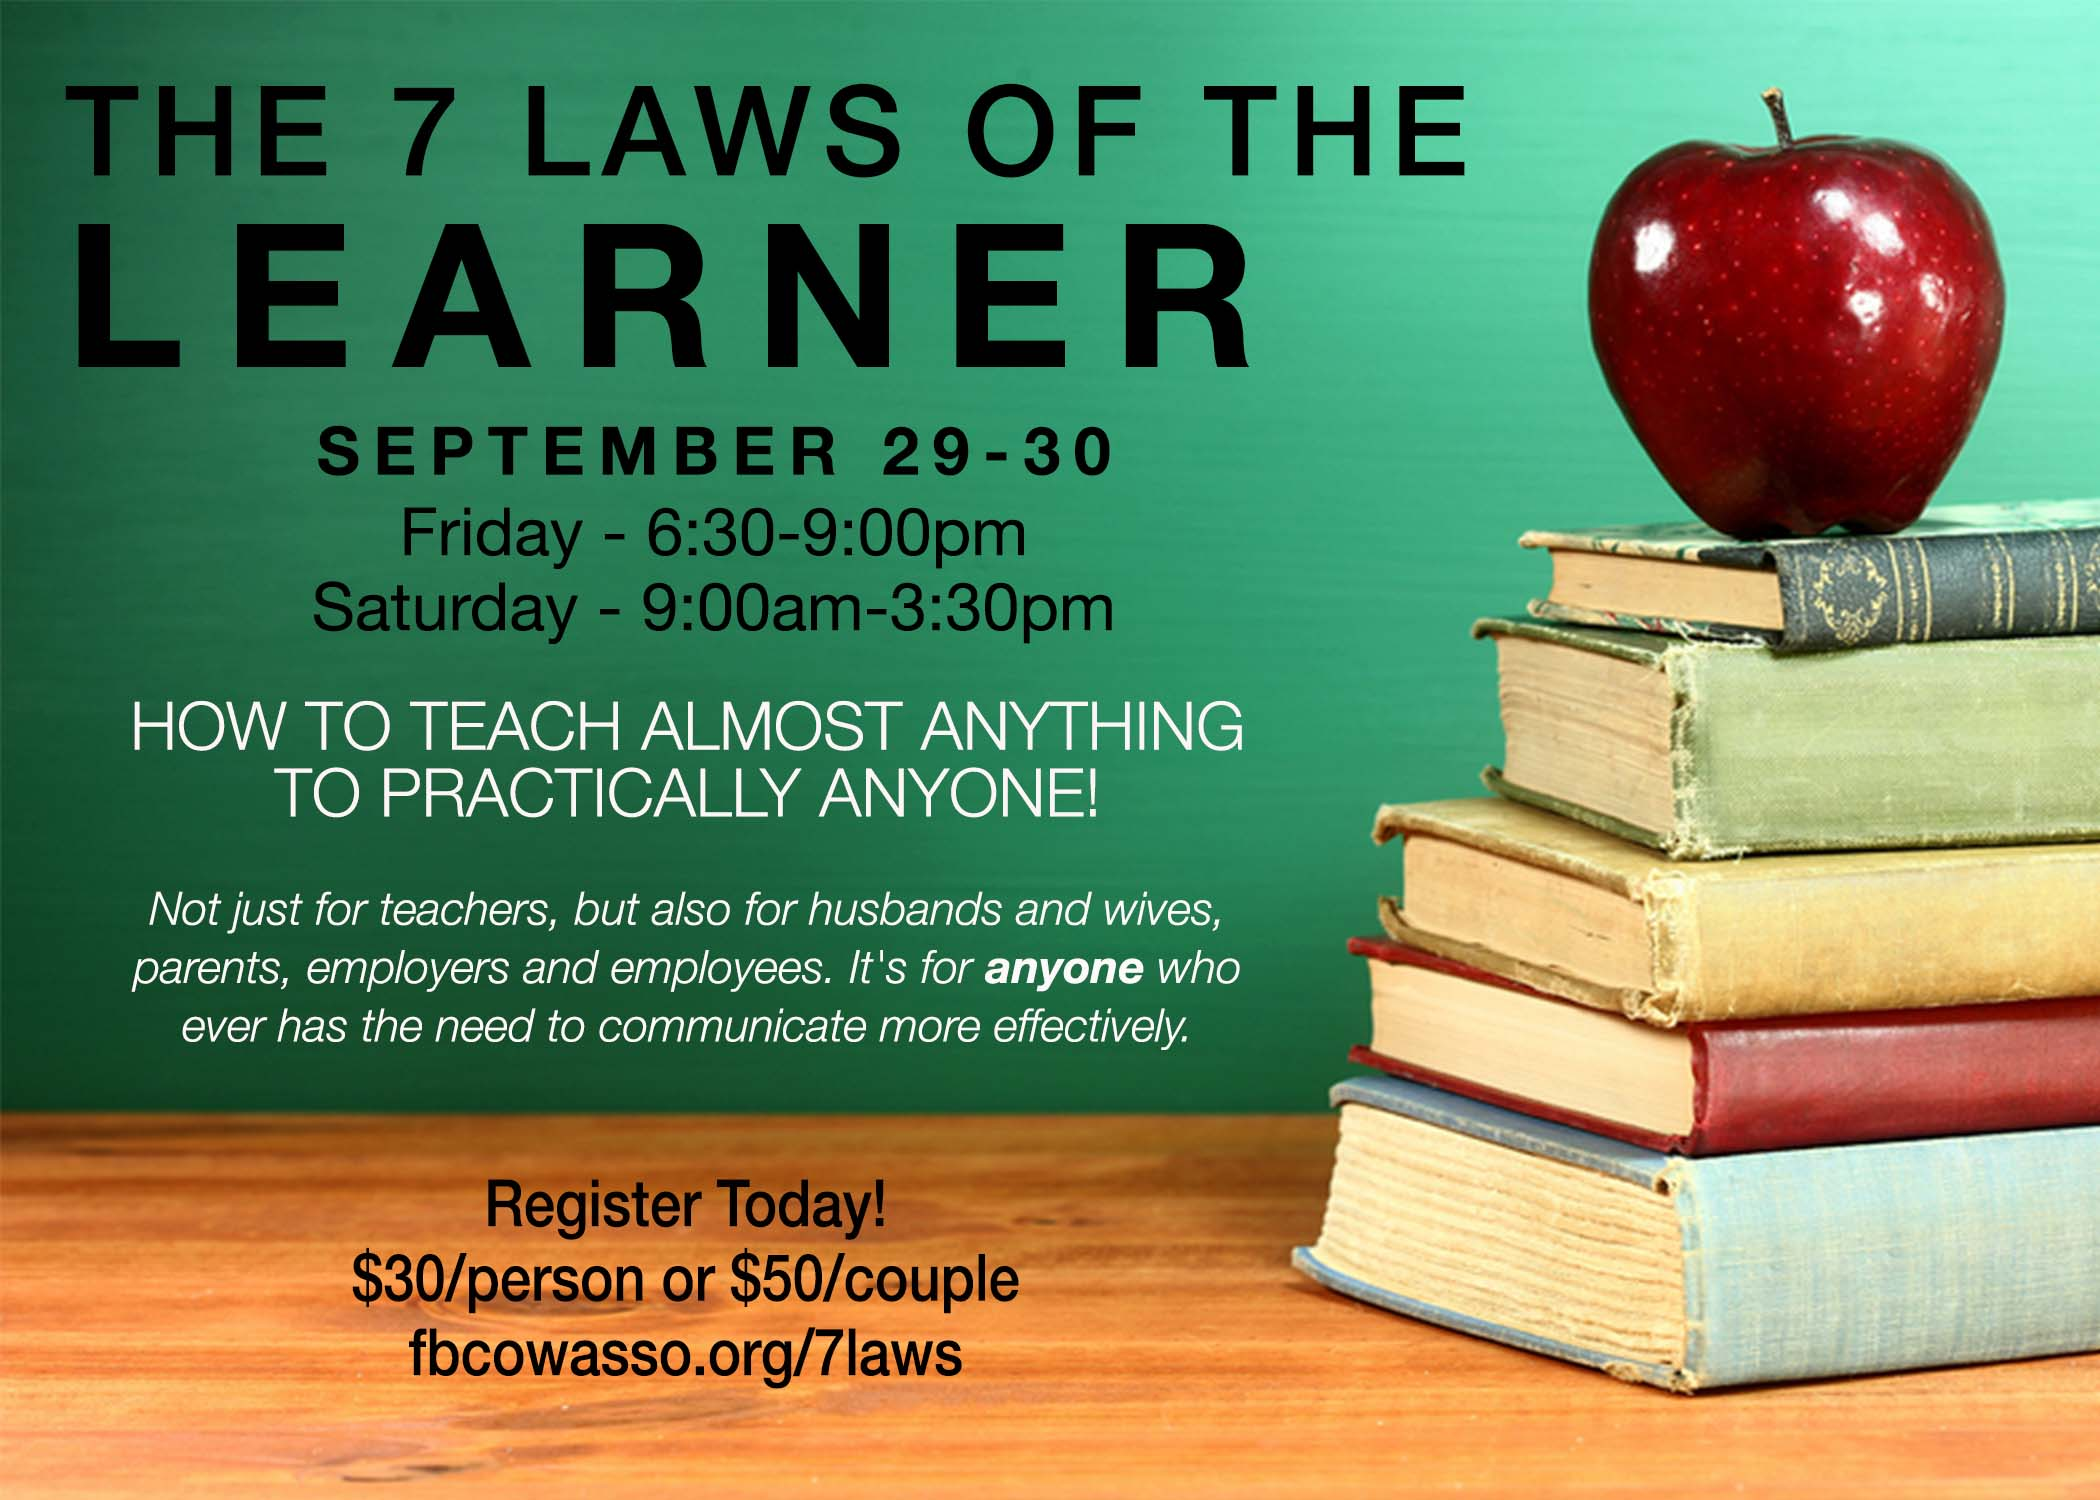 7 laws of the learner promo